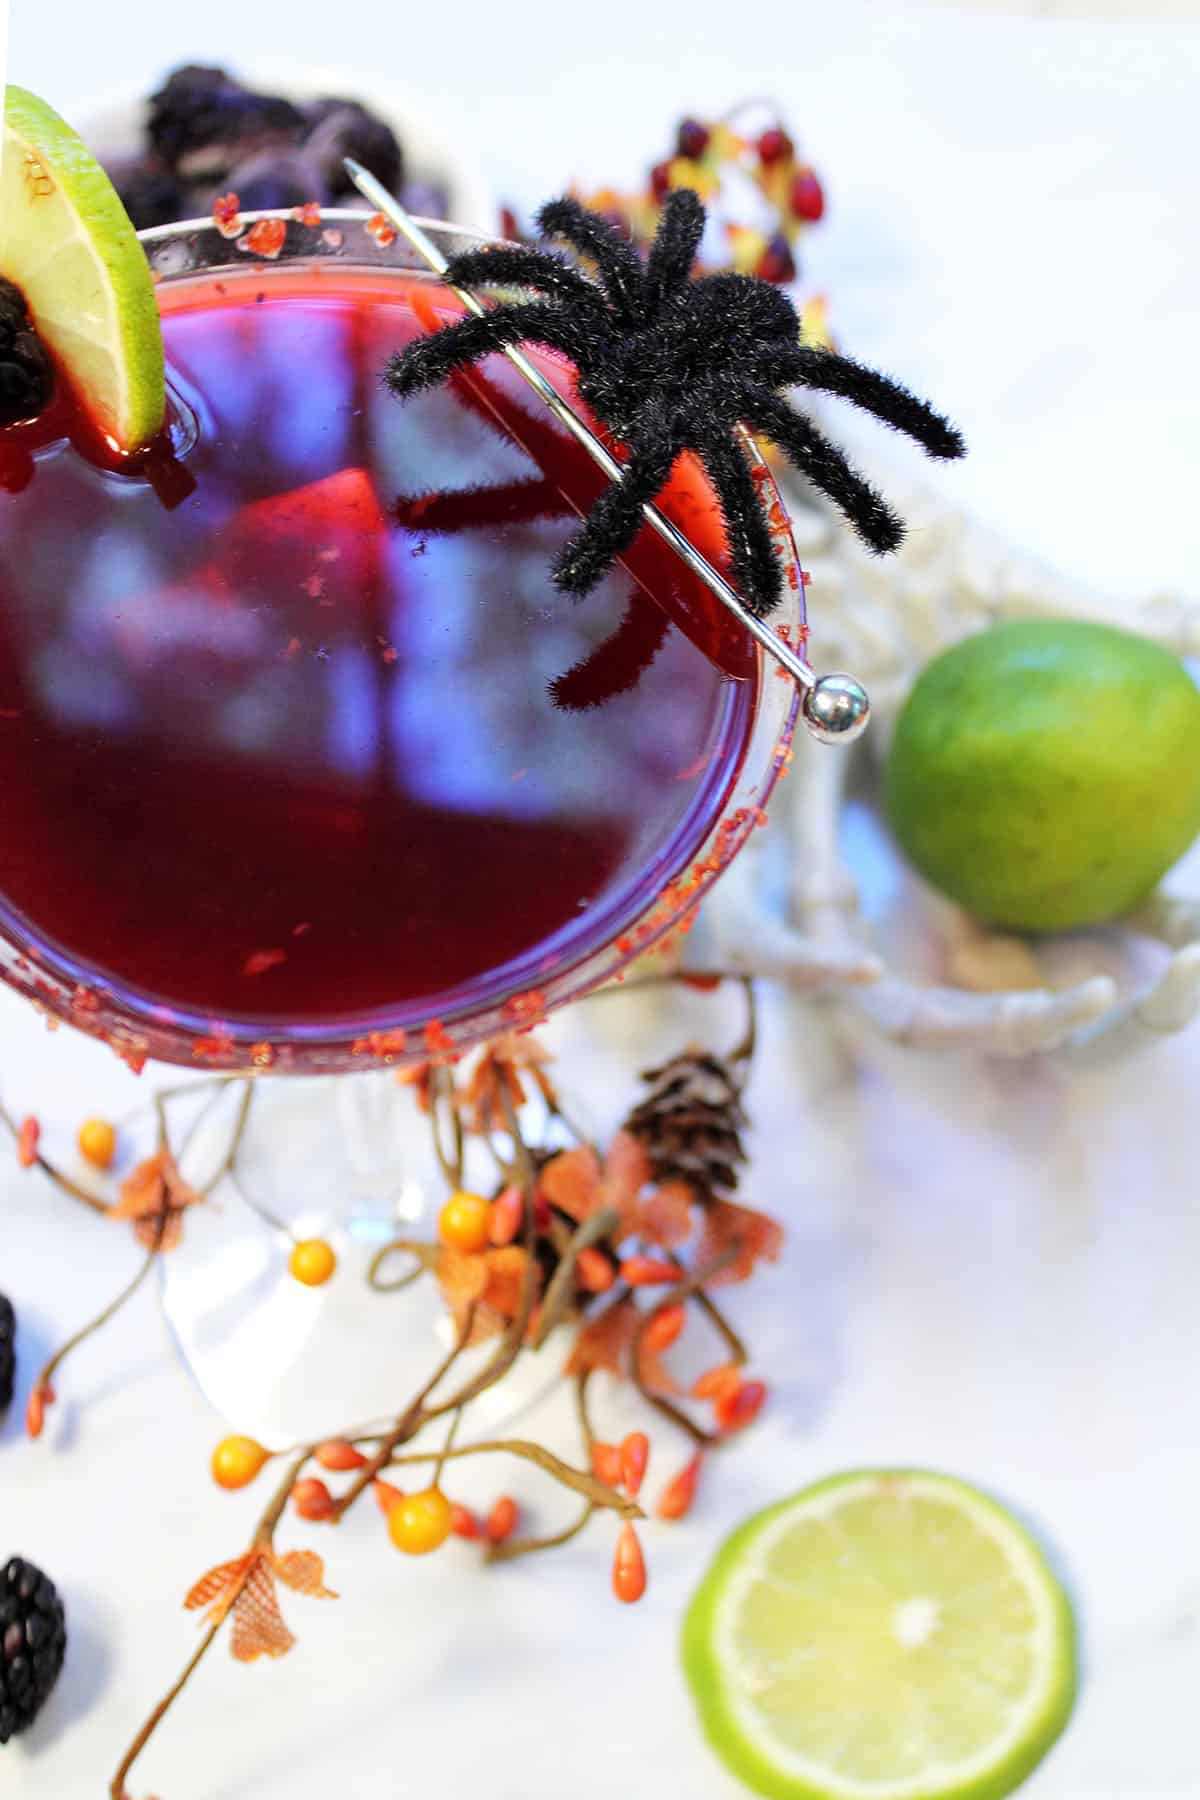 Looking into glass with lime and blackberry garnish and a lil ole spider.